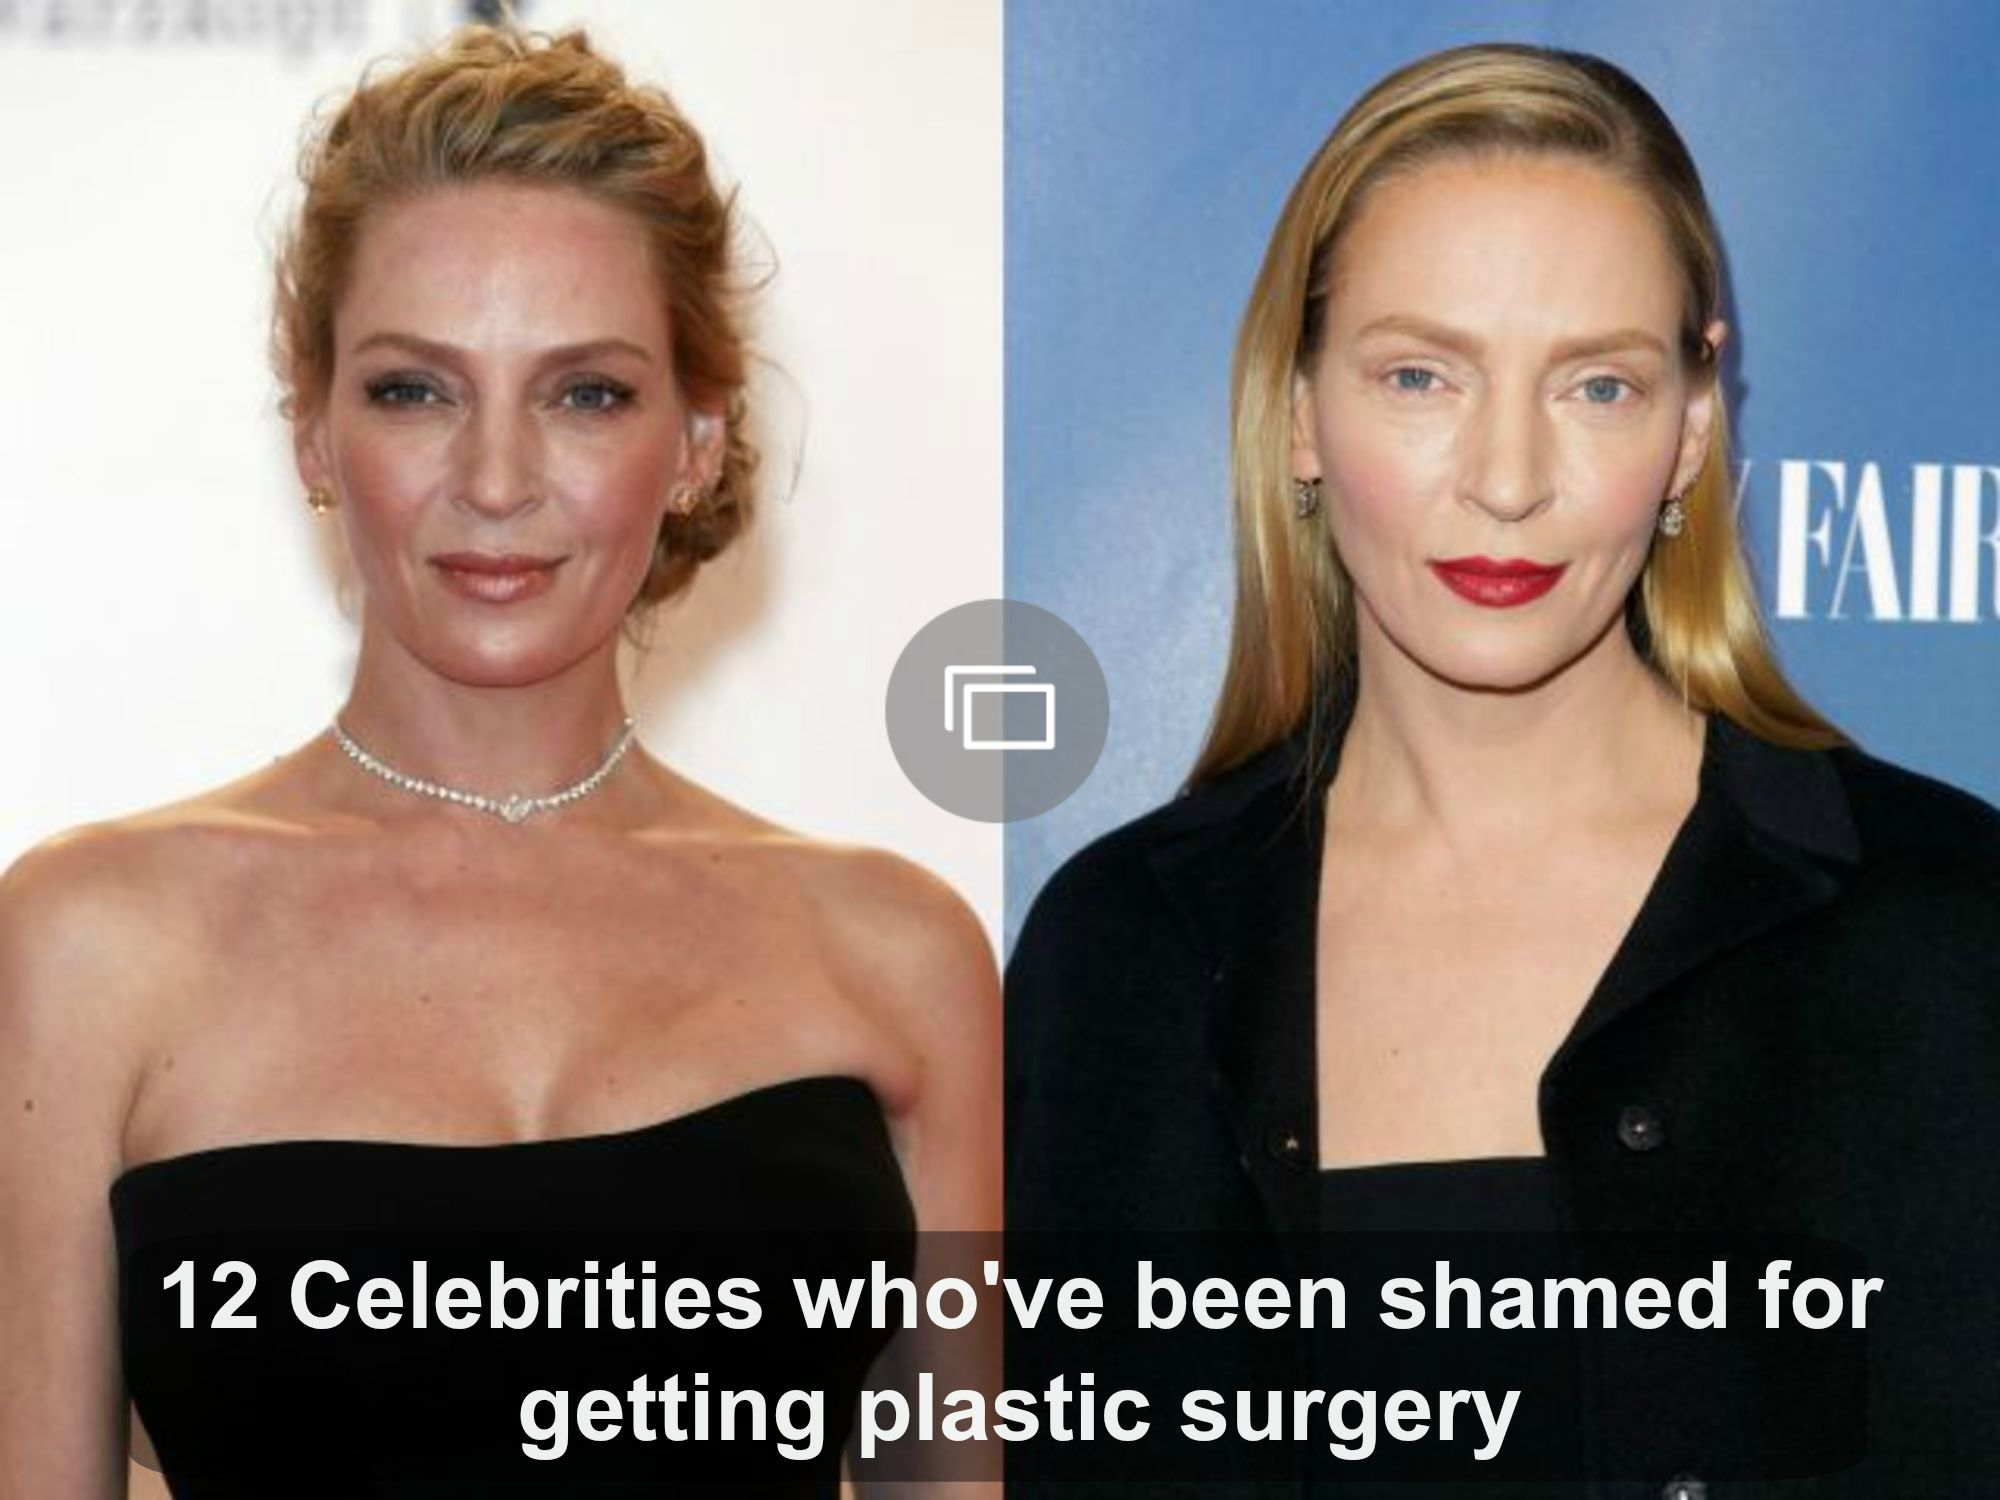 Celebrities who've been shamed for plastic surgery